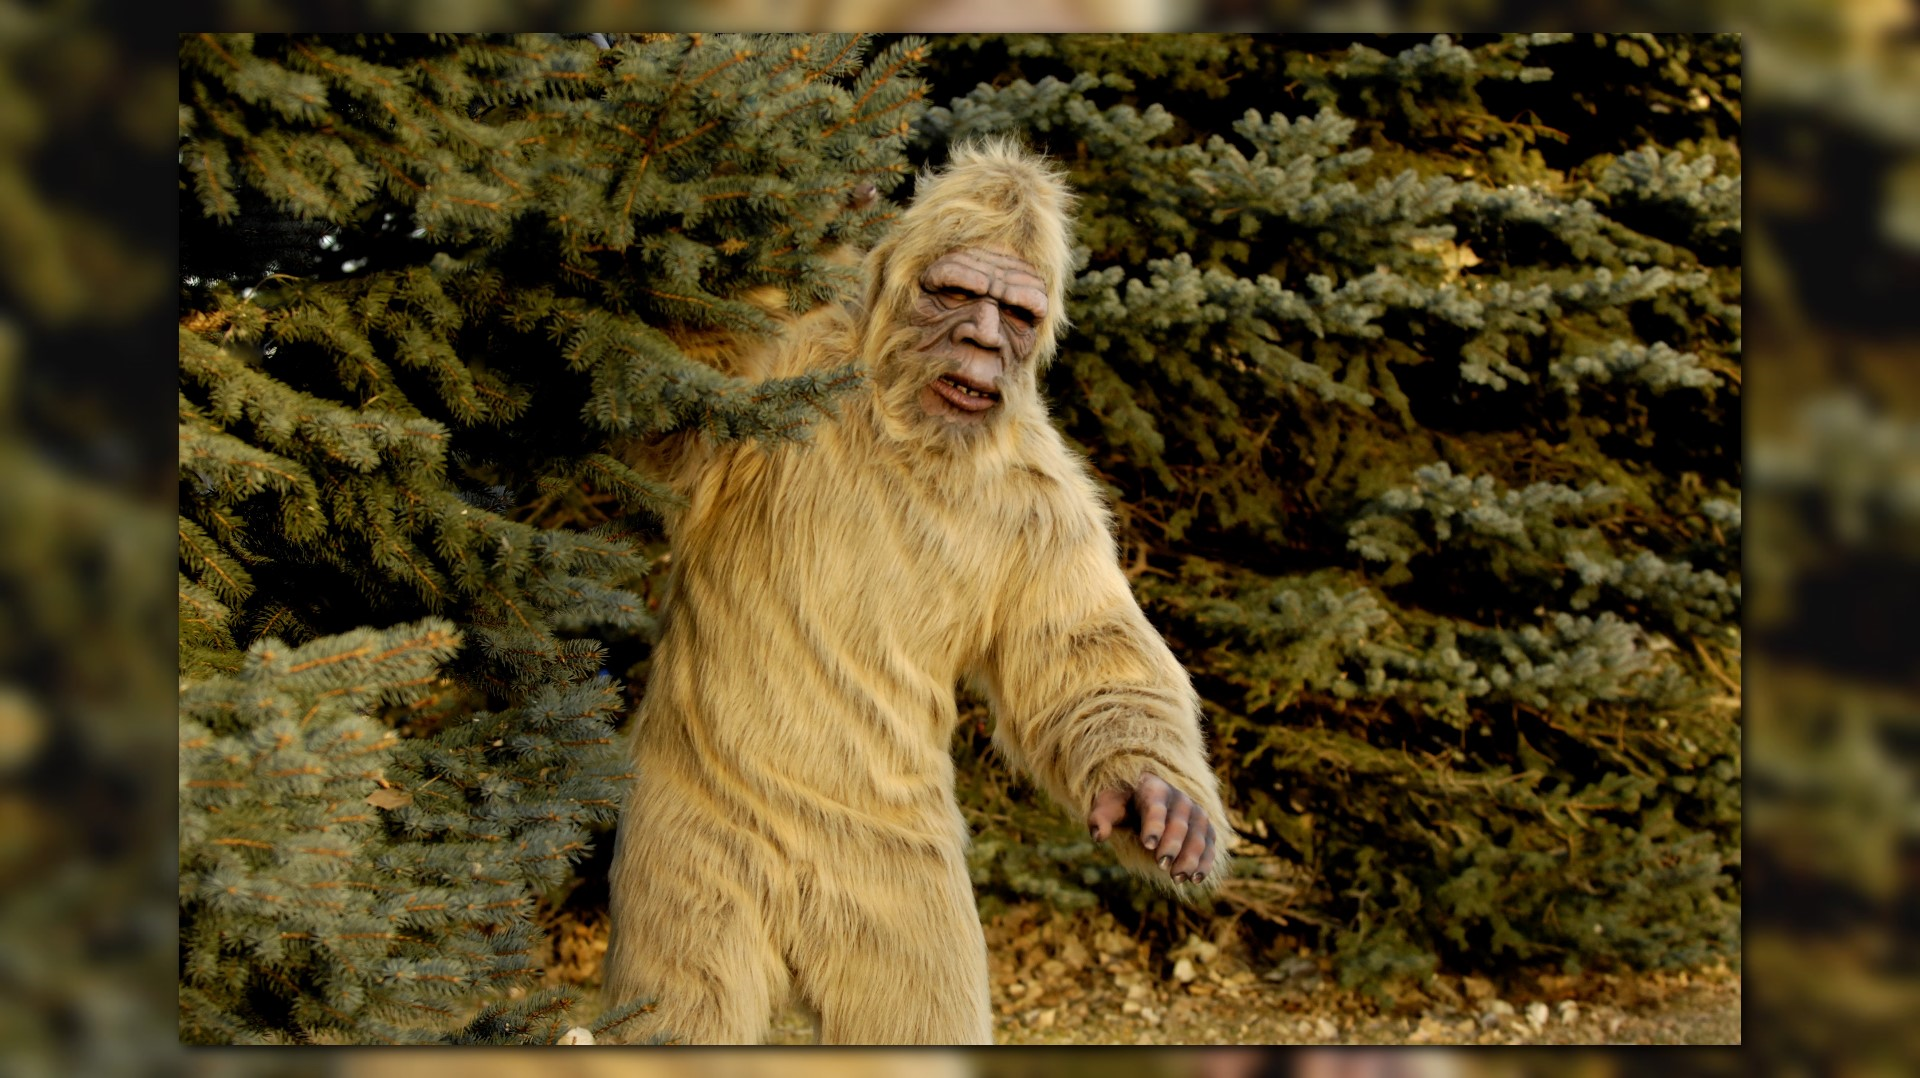 North Face Log >> Man claims to have spotted Bigfoot in North Carolina | WHAS11.com